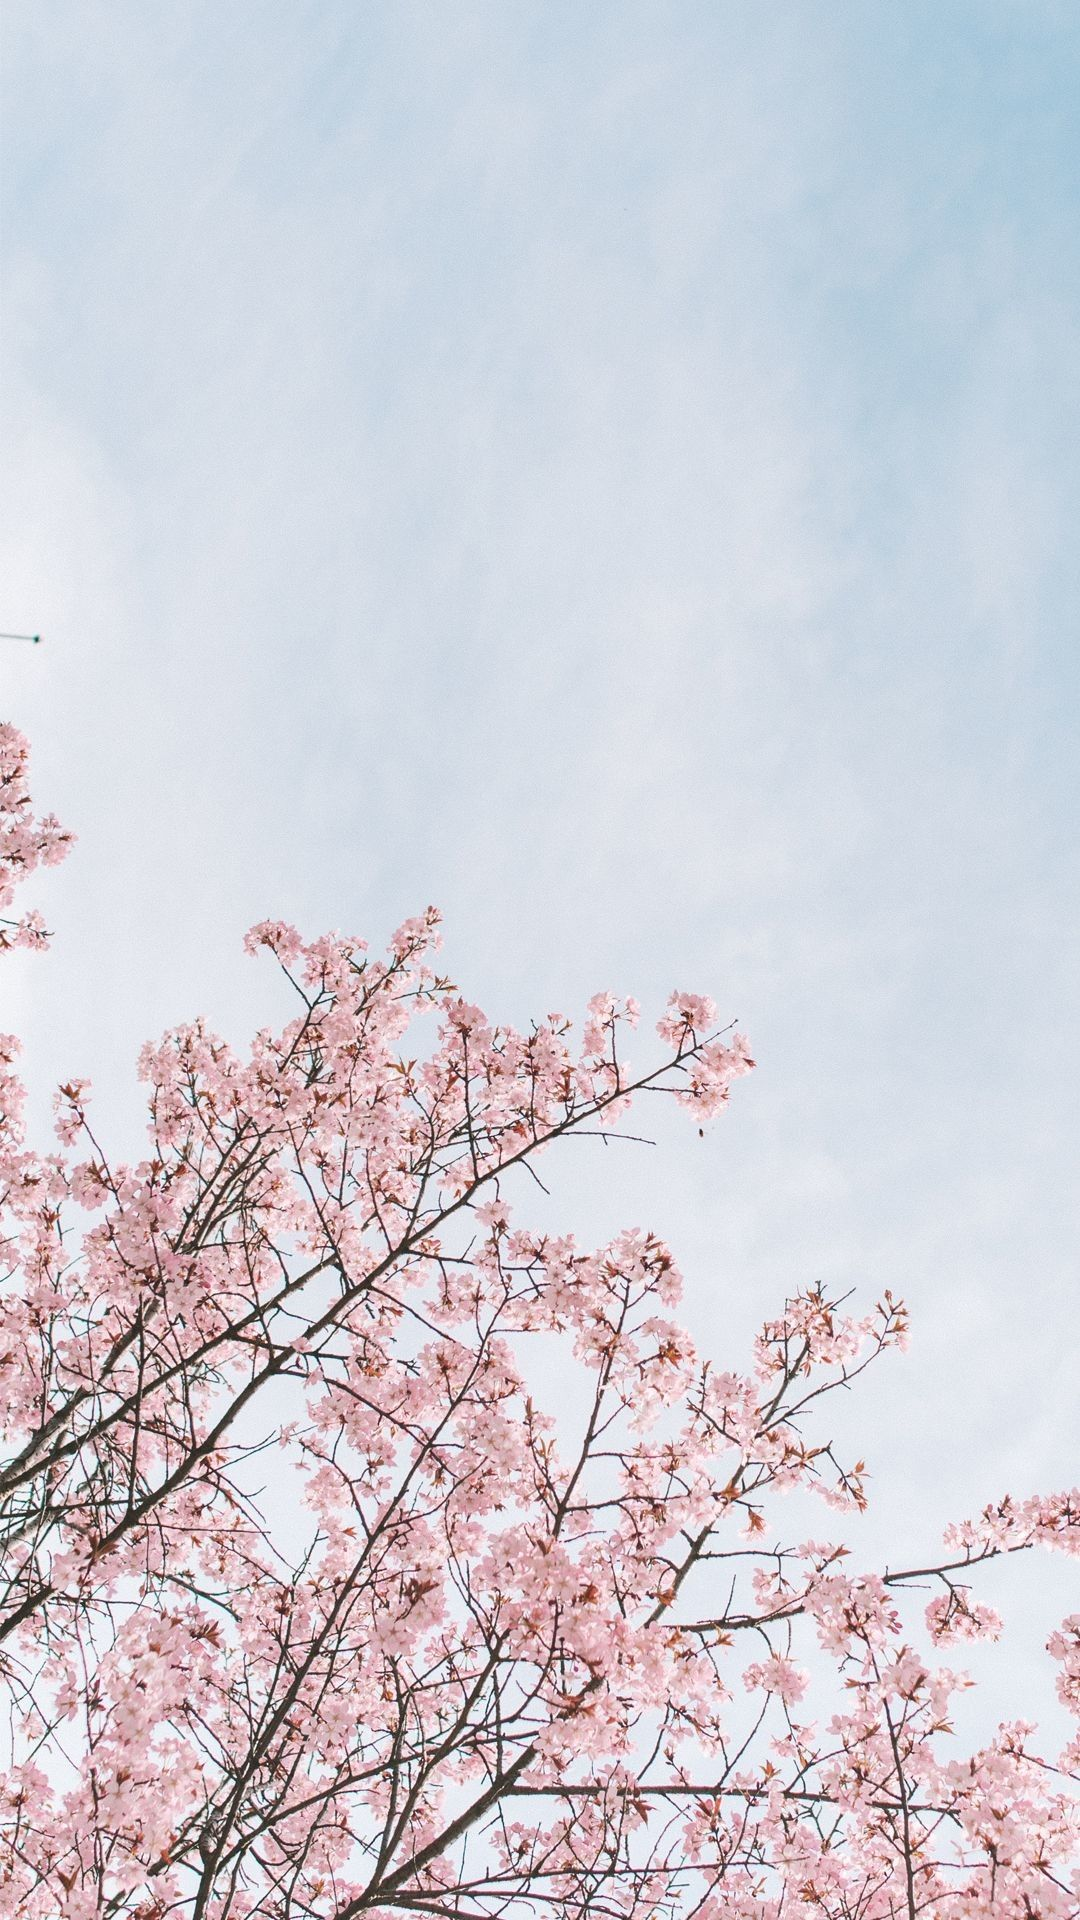 Cherry Blossom Anime Aesthetic Wallpapers Wallpaper Cave